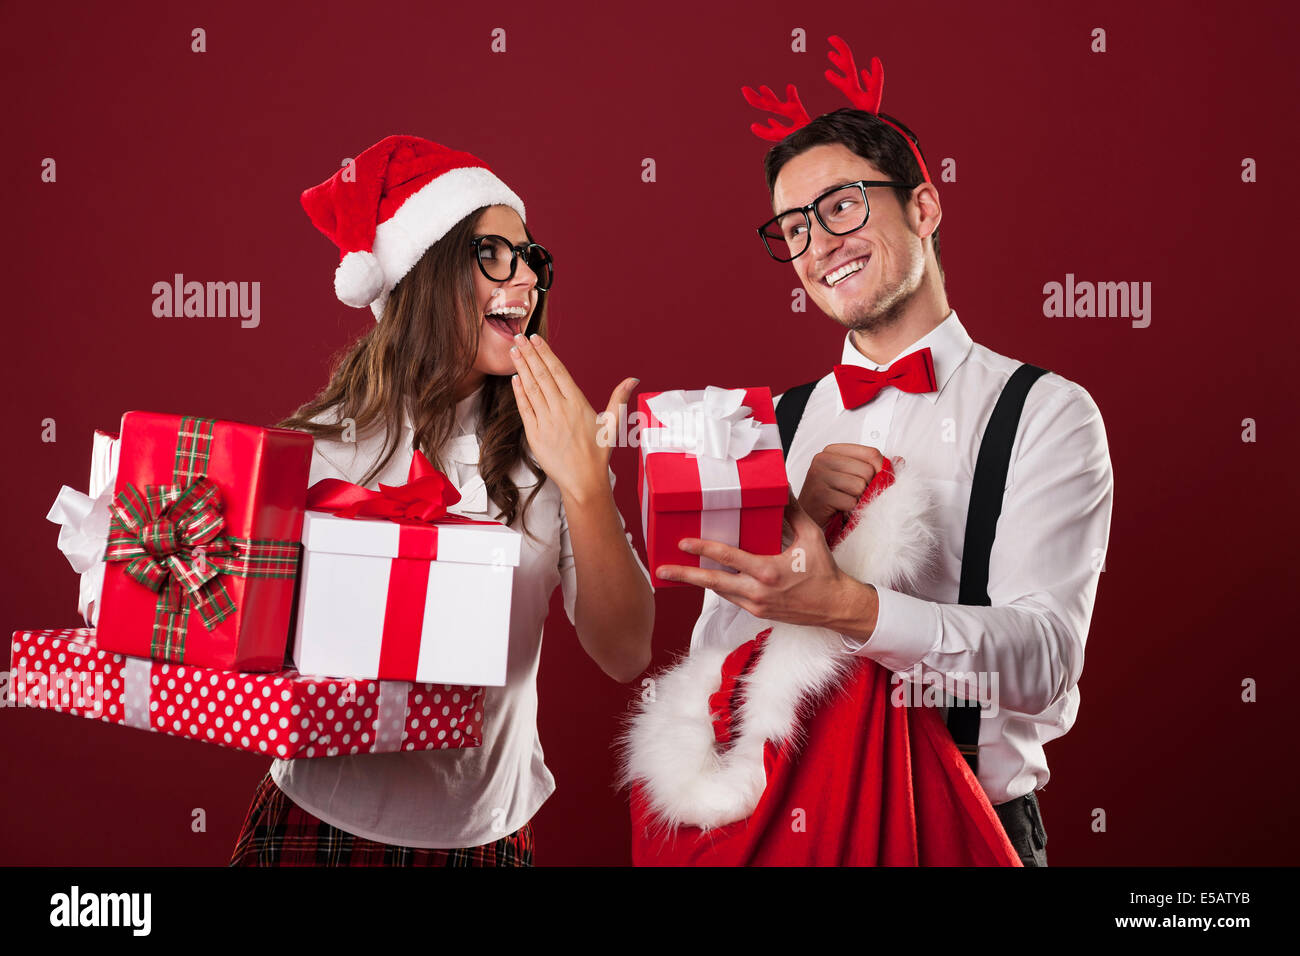 Nerd couple exchanging Christmas gifts Debica, Poland - Stock Image